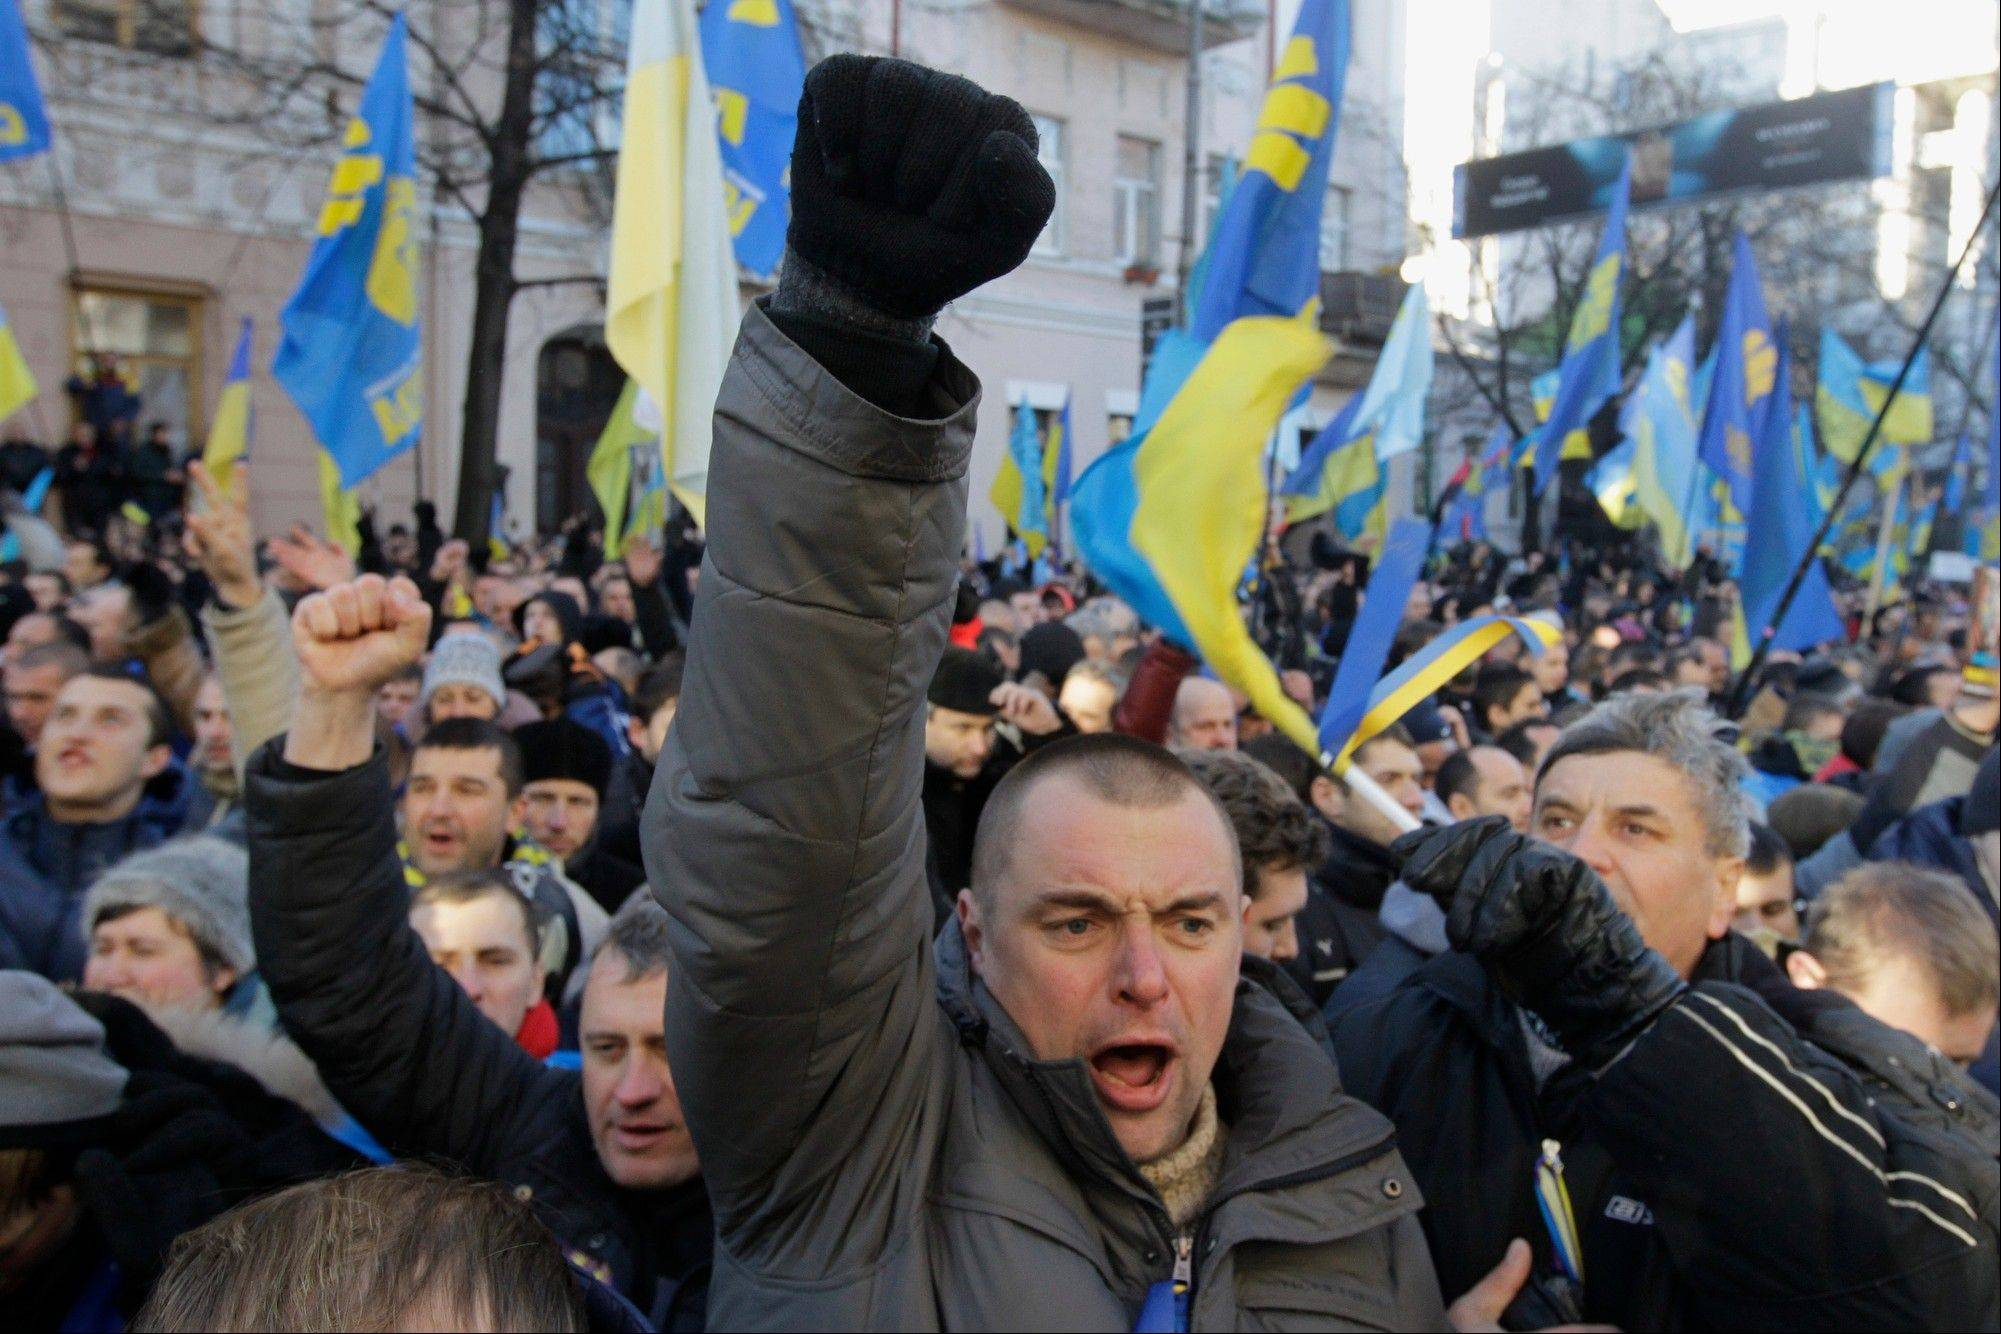 Protesters chant slogans outside the Parliament in Kiev, Ukraine, on Tuesday, Dec. 3, 2013.